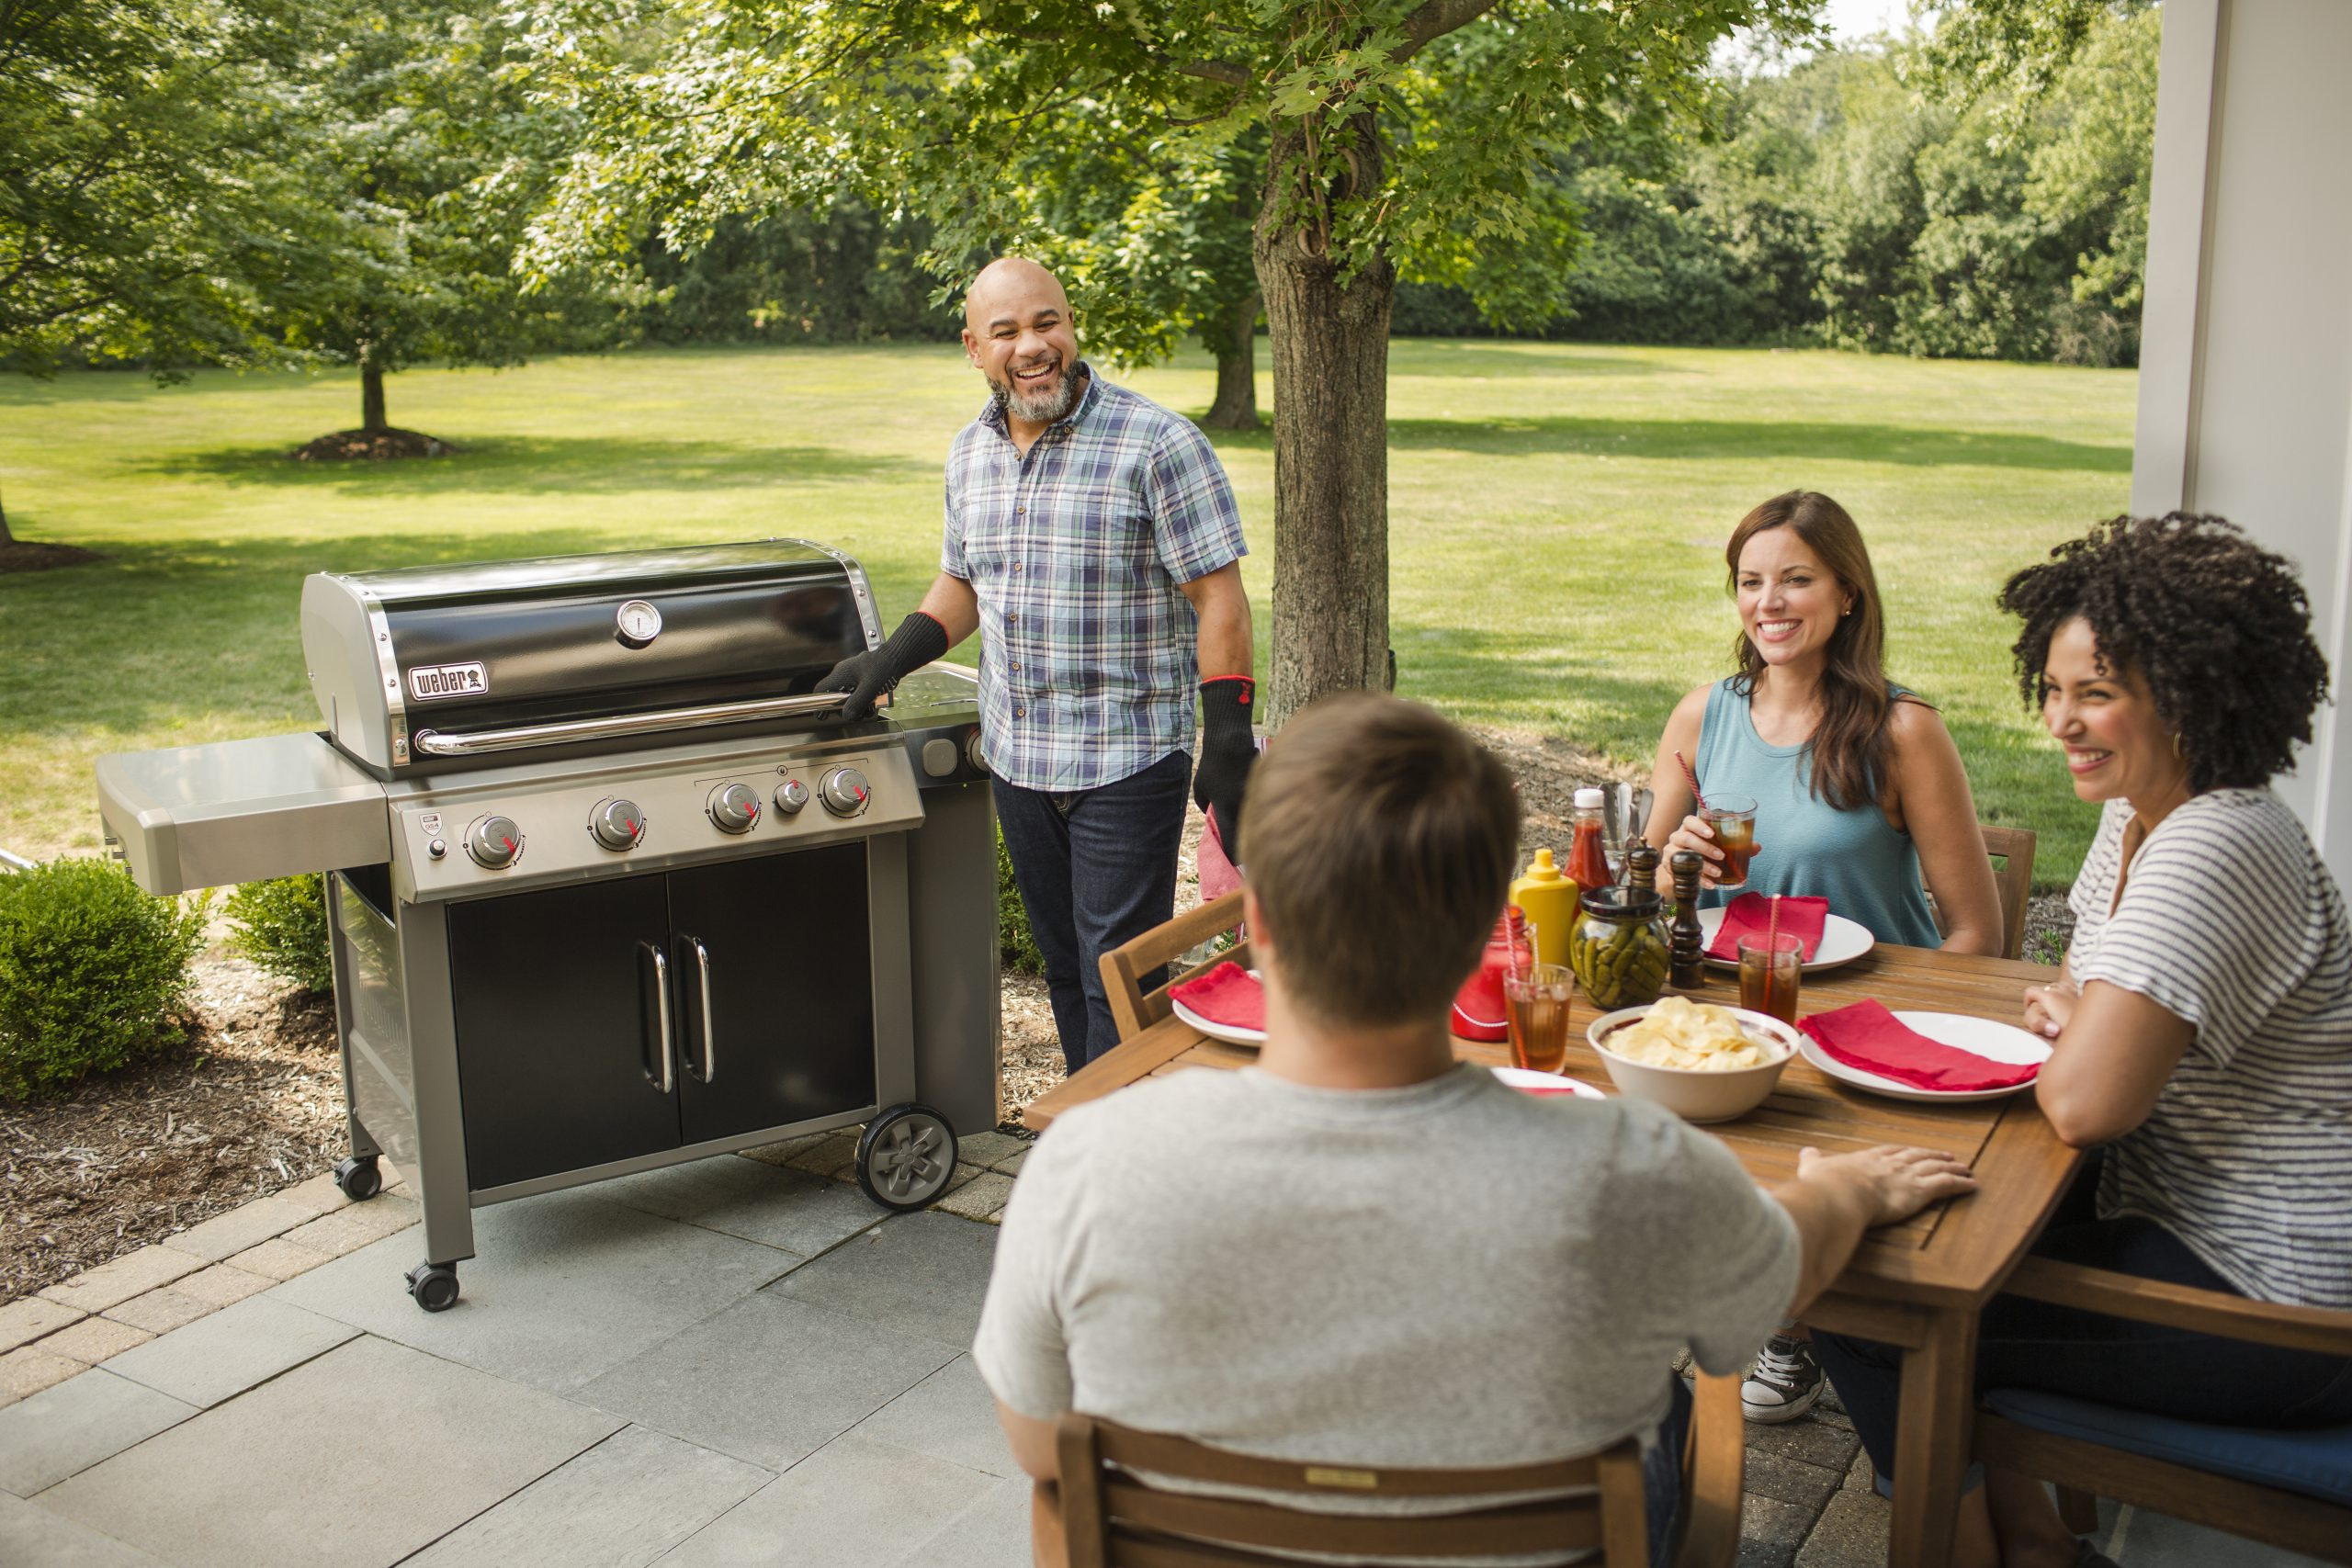 This is a picture of the Weber E - 435 in a backyard setting with 4 people enjoying a barbecue